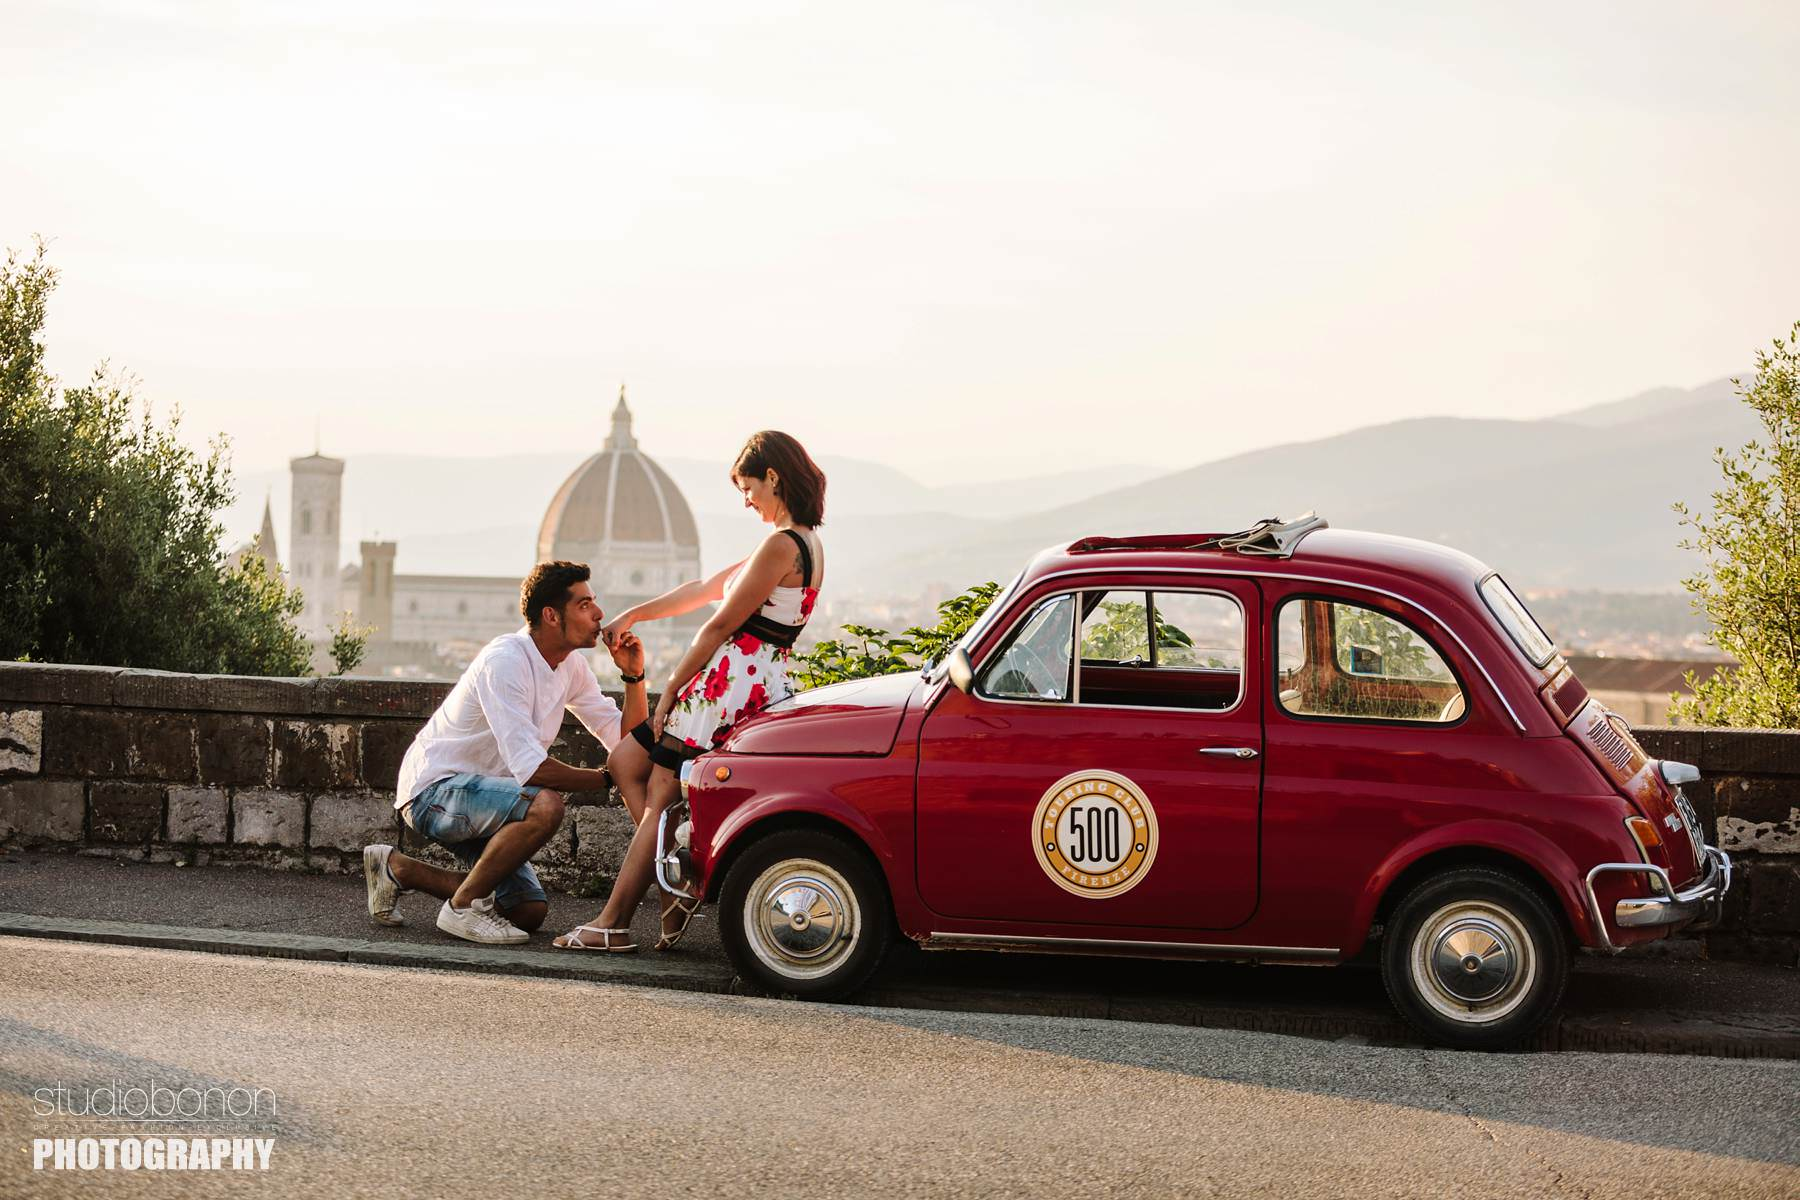 Fiat 500 tour in Florence: your authentic Italian experience!